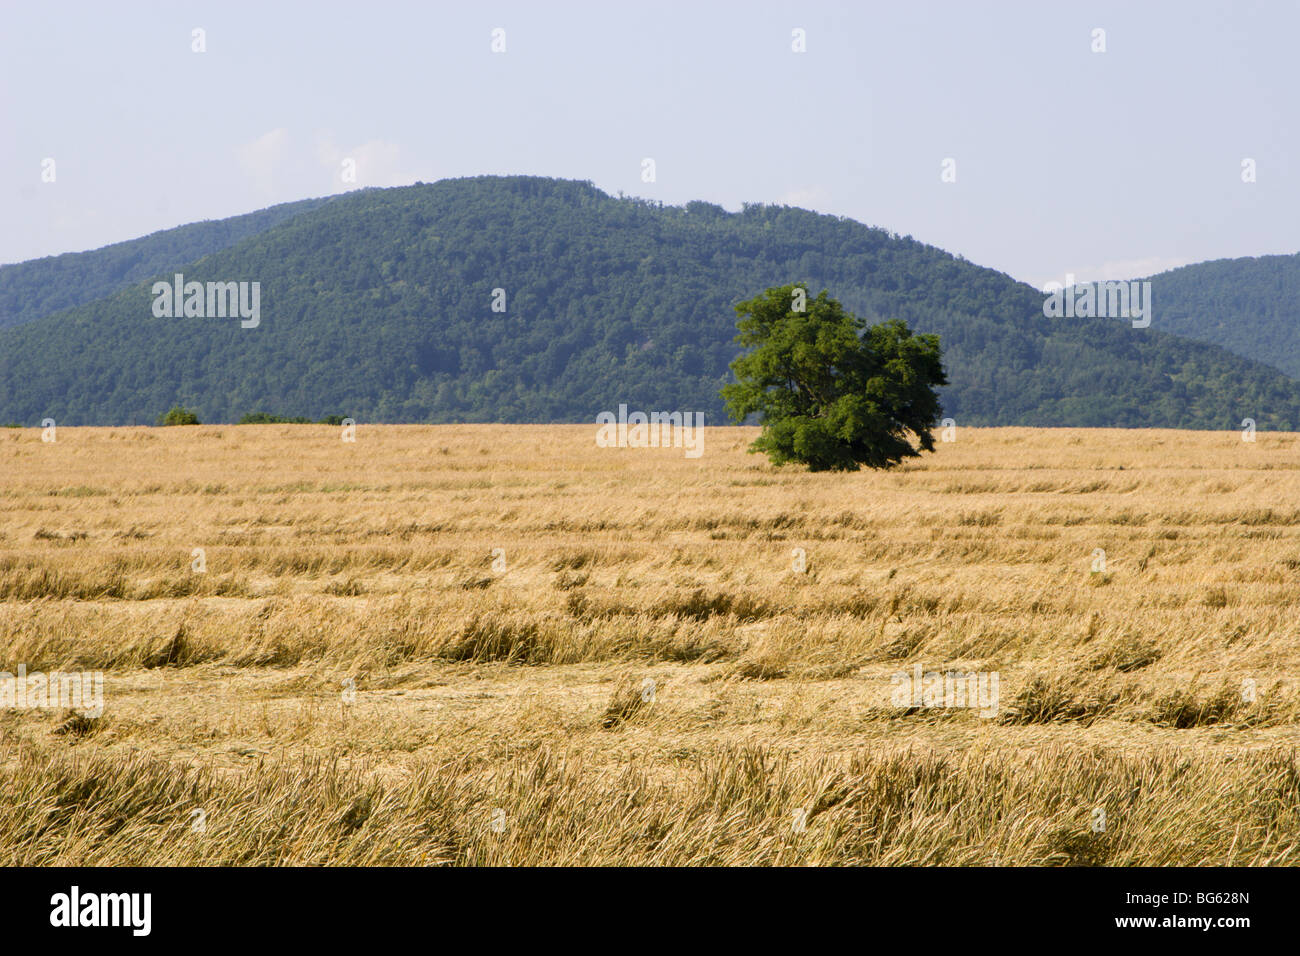 tree in the acre of grain - Stock Image